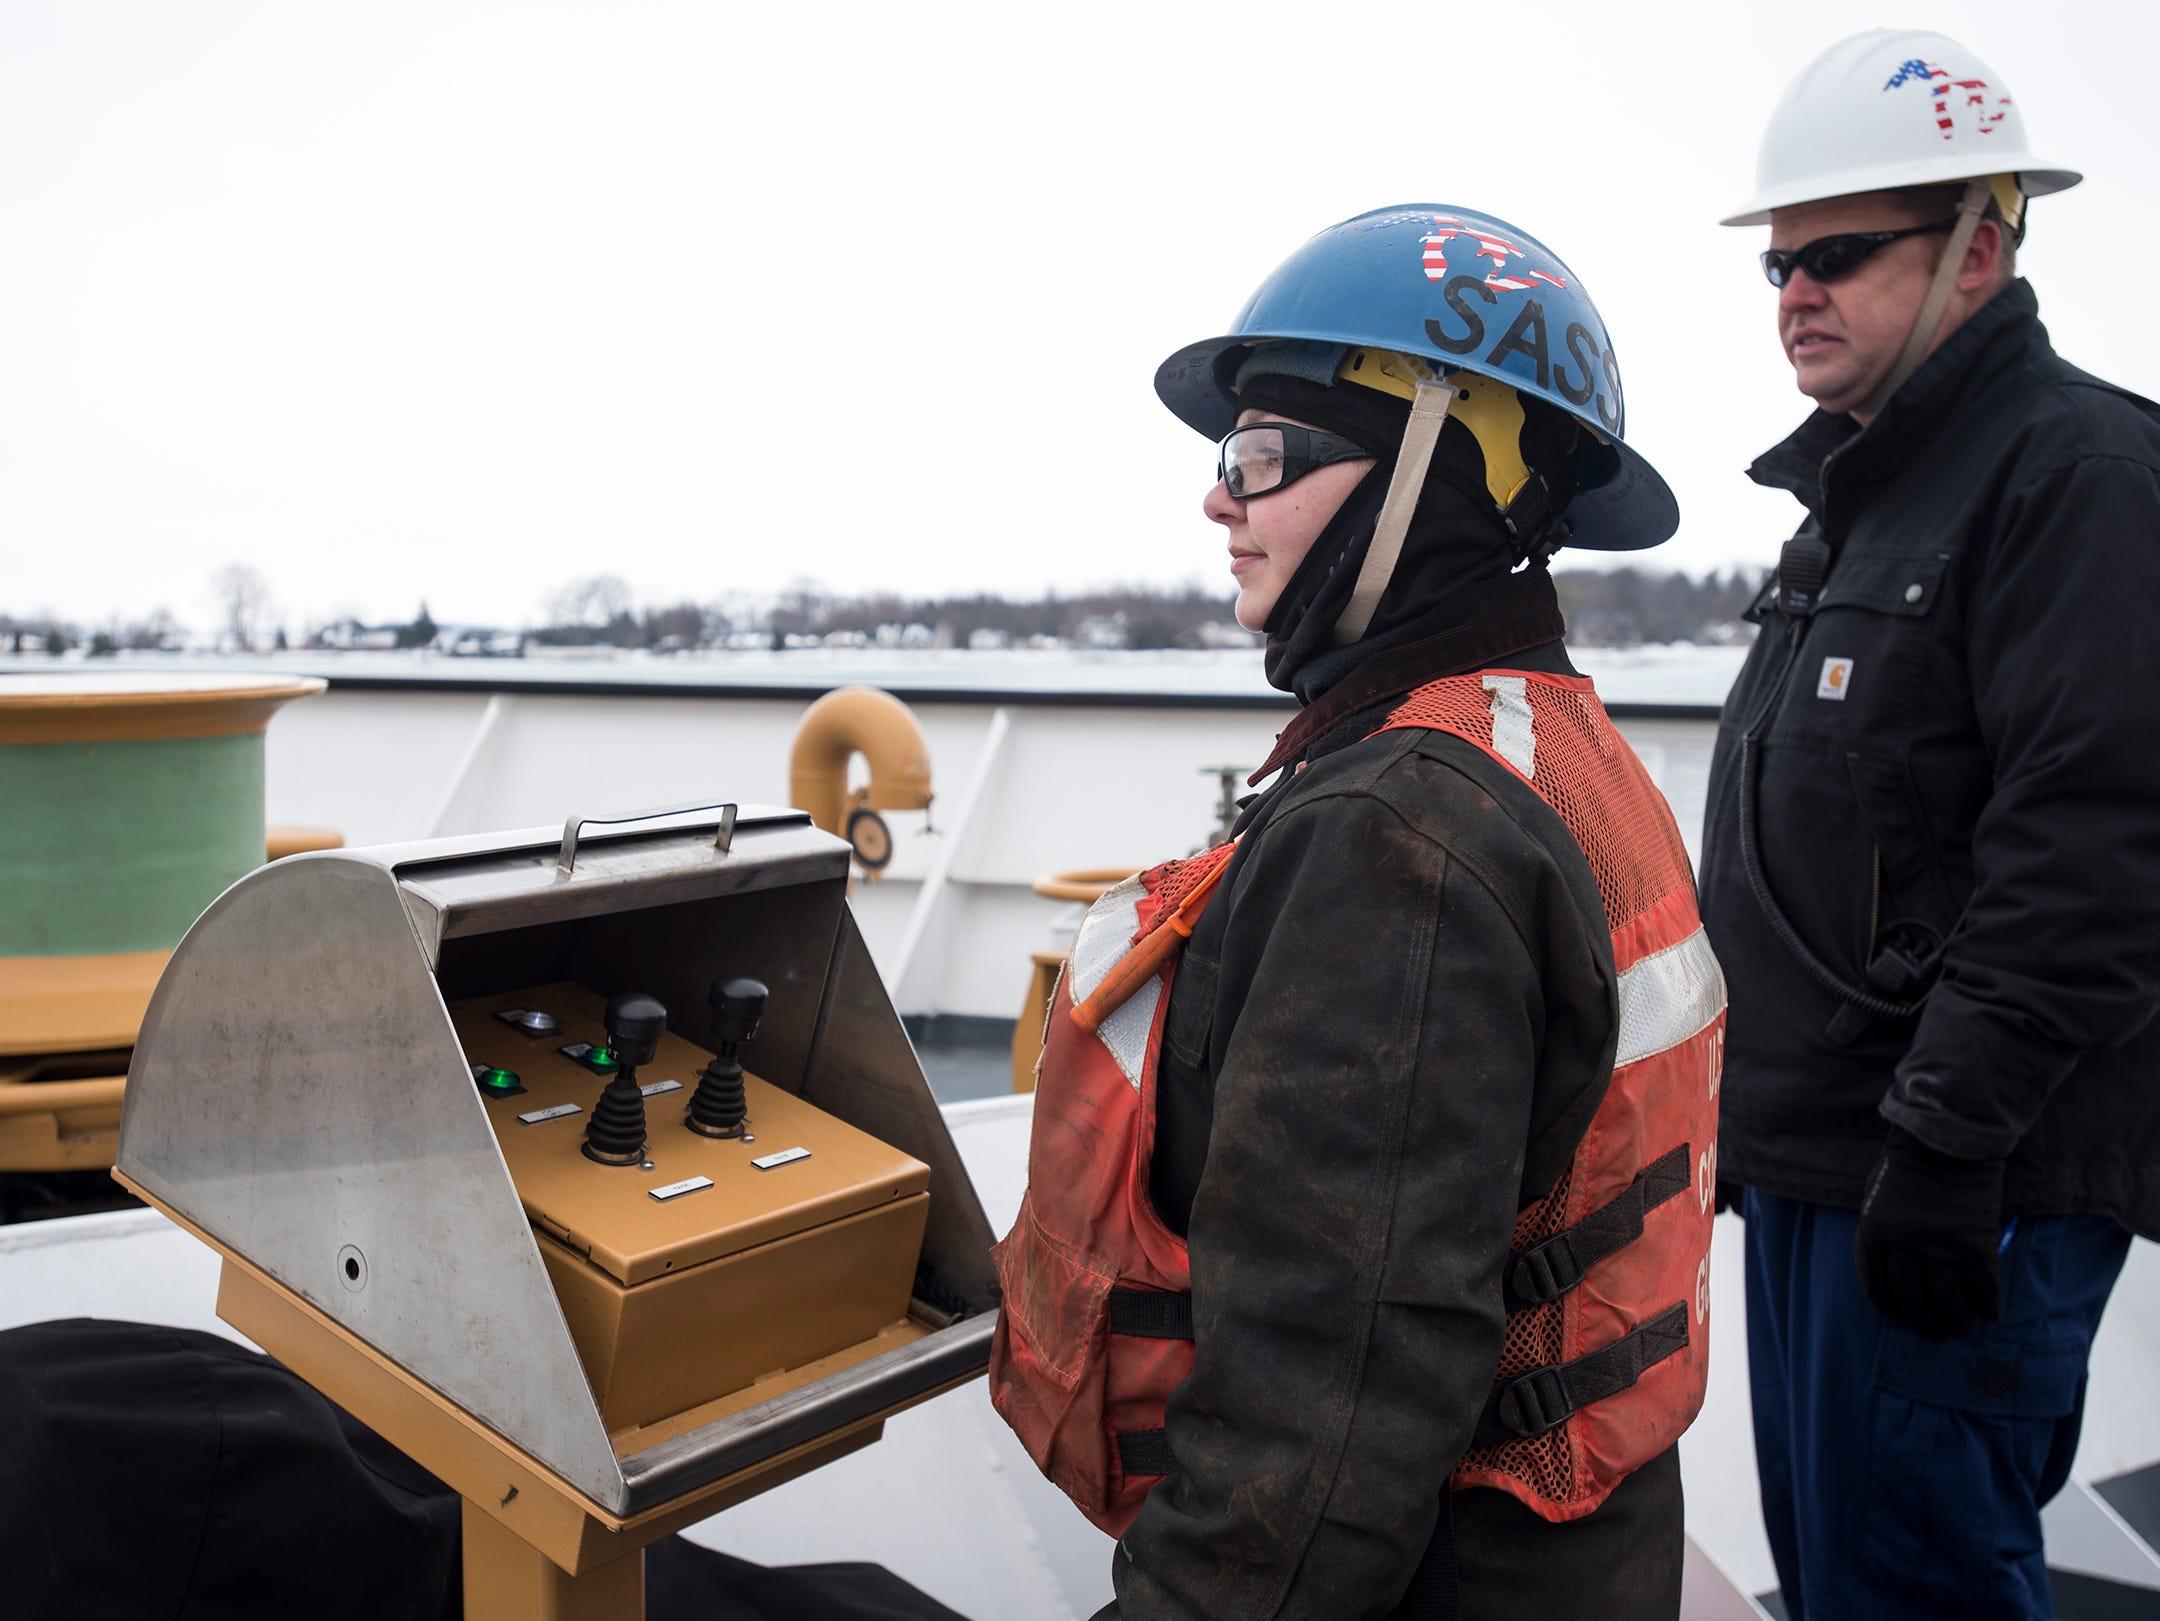 Seaman Christie Rosa, left, waits near a control panel with CW02 Adam Kane on the deck of the USCGC Hollyhock Wednesday, Feb. 20, 2019.